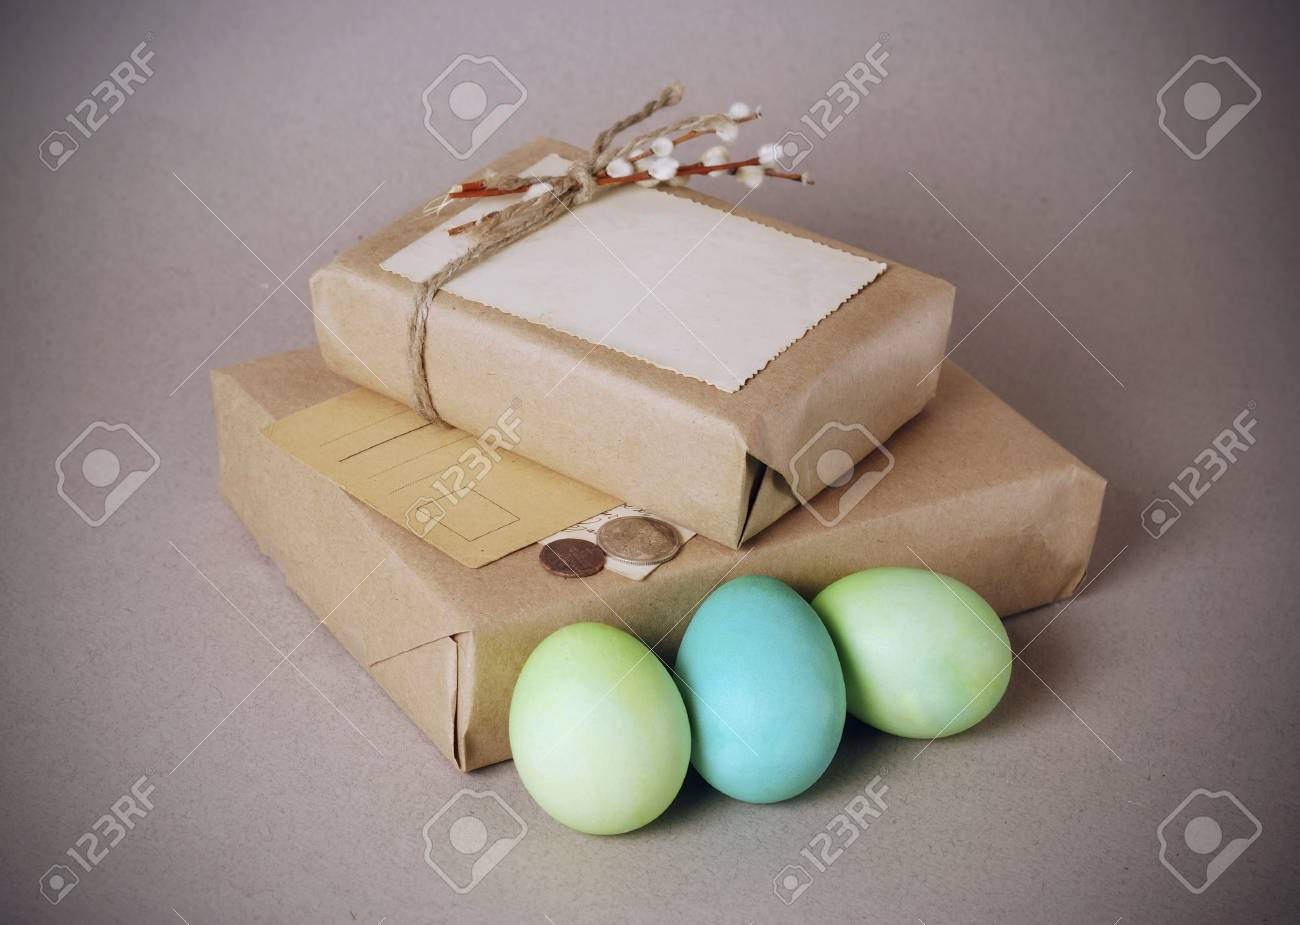 Vintage still life with easter eggs and gift boxes in craft paper stock photo vintage still life with easter eggs and gift boxes in craft paper negle Image collections